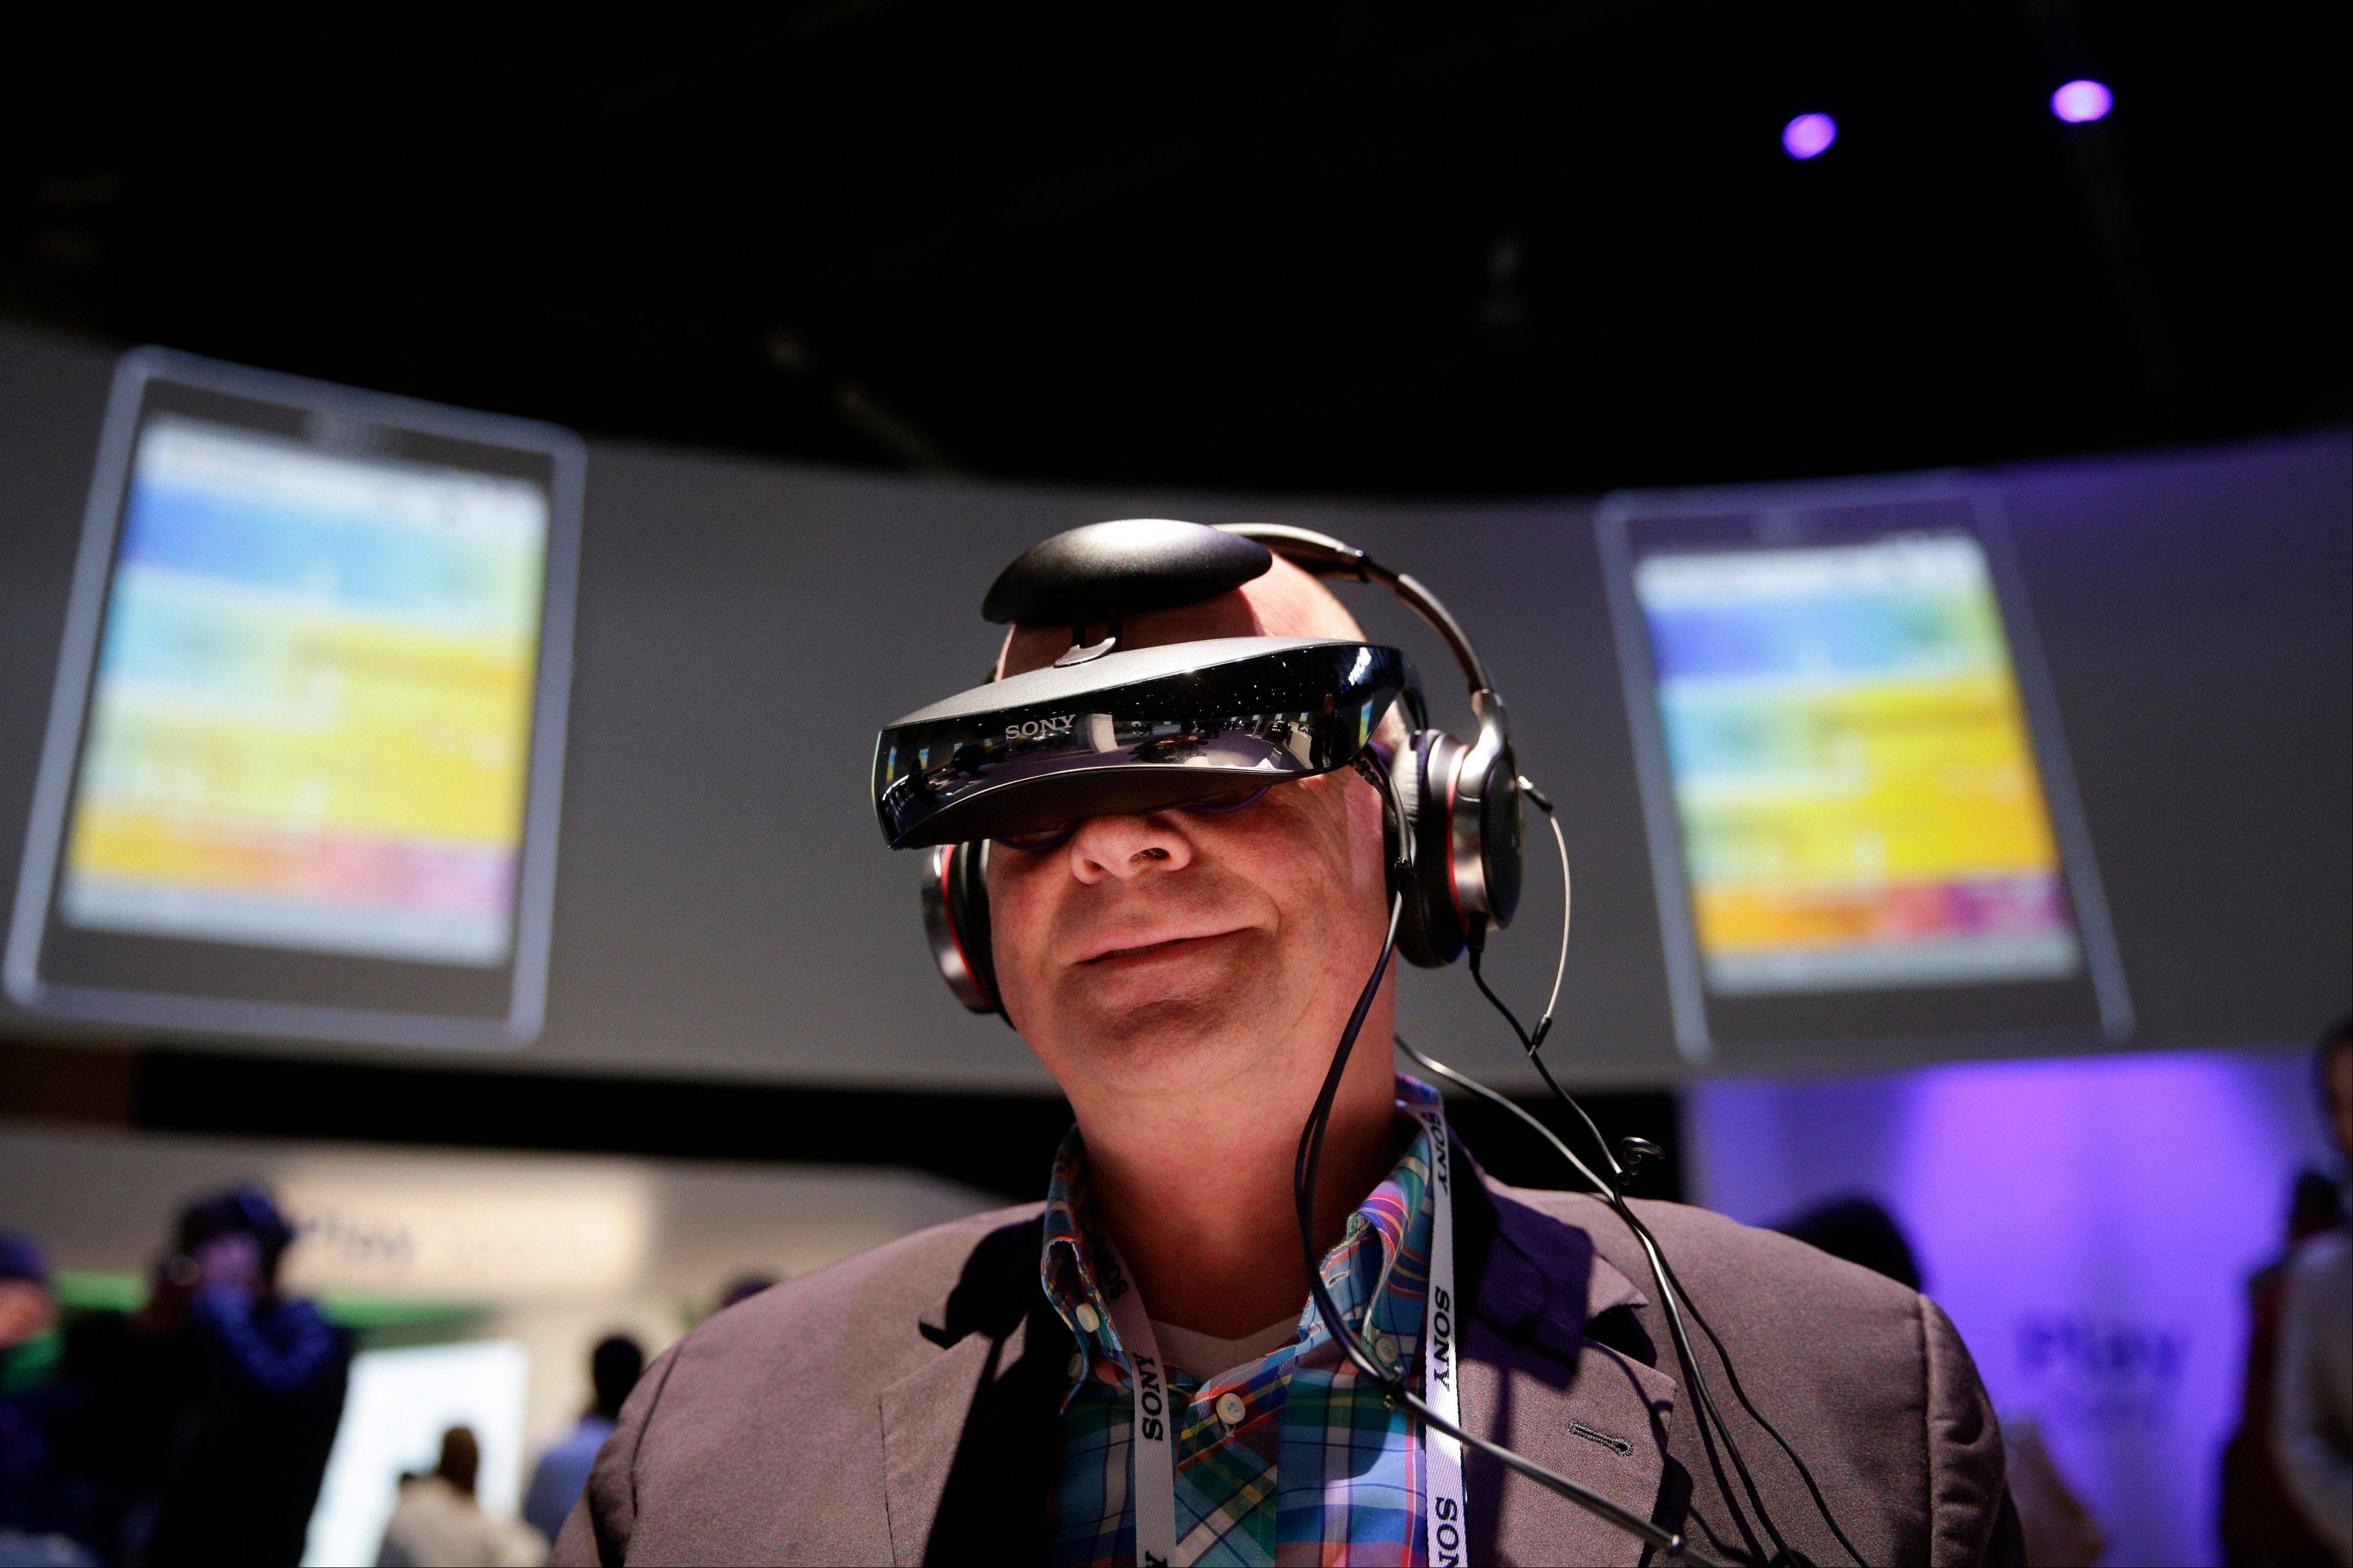 Juergen Boyny, of Germany, watches a video clip with a personal viewing device at the Sony booth at the International Consumer Electronics Show.